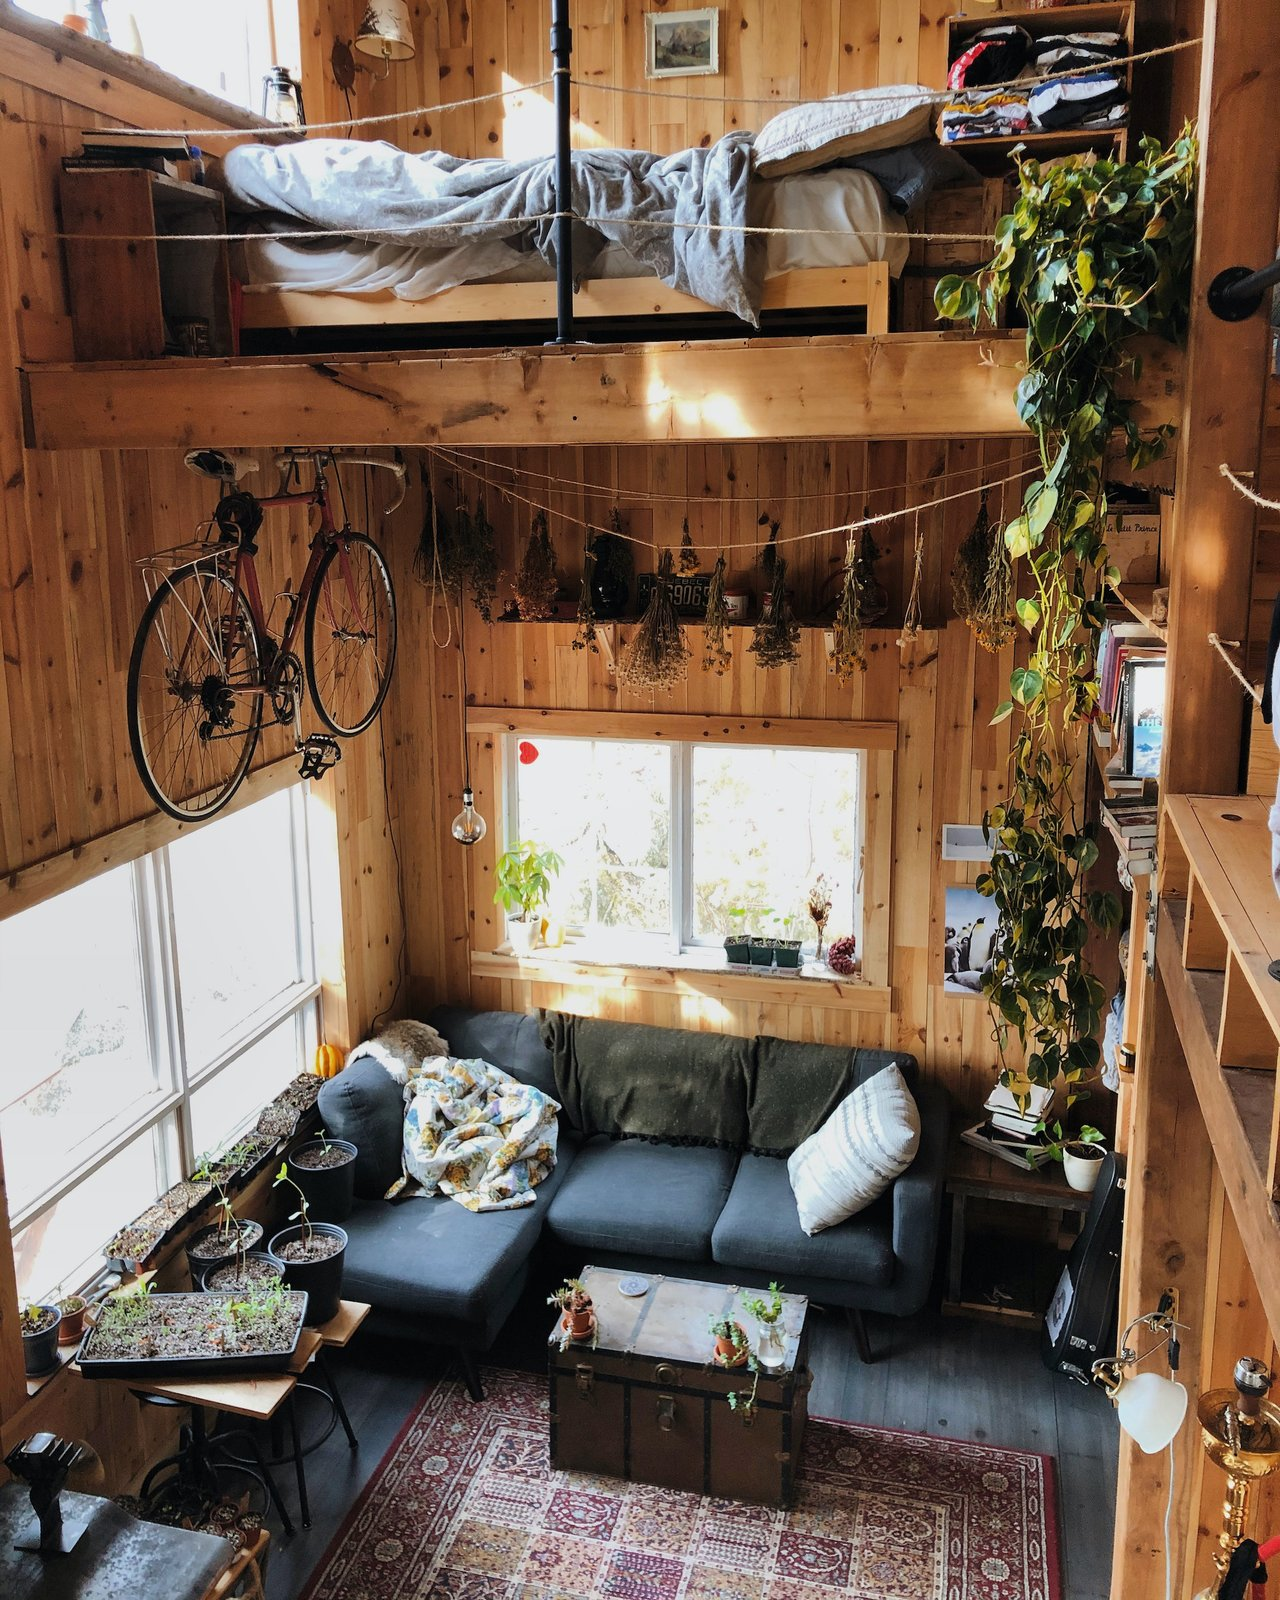 Living room and bedroom of Canadian Castaway Off-Grid Cabin.